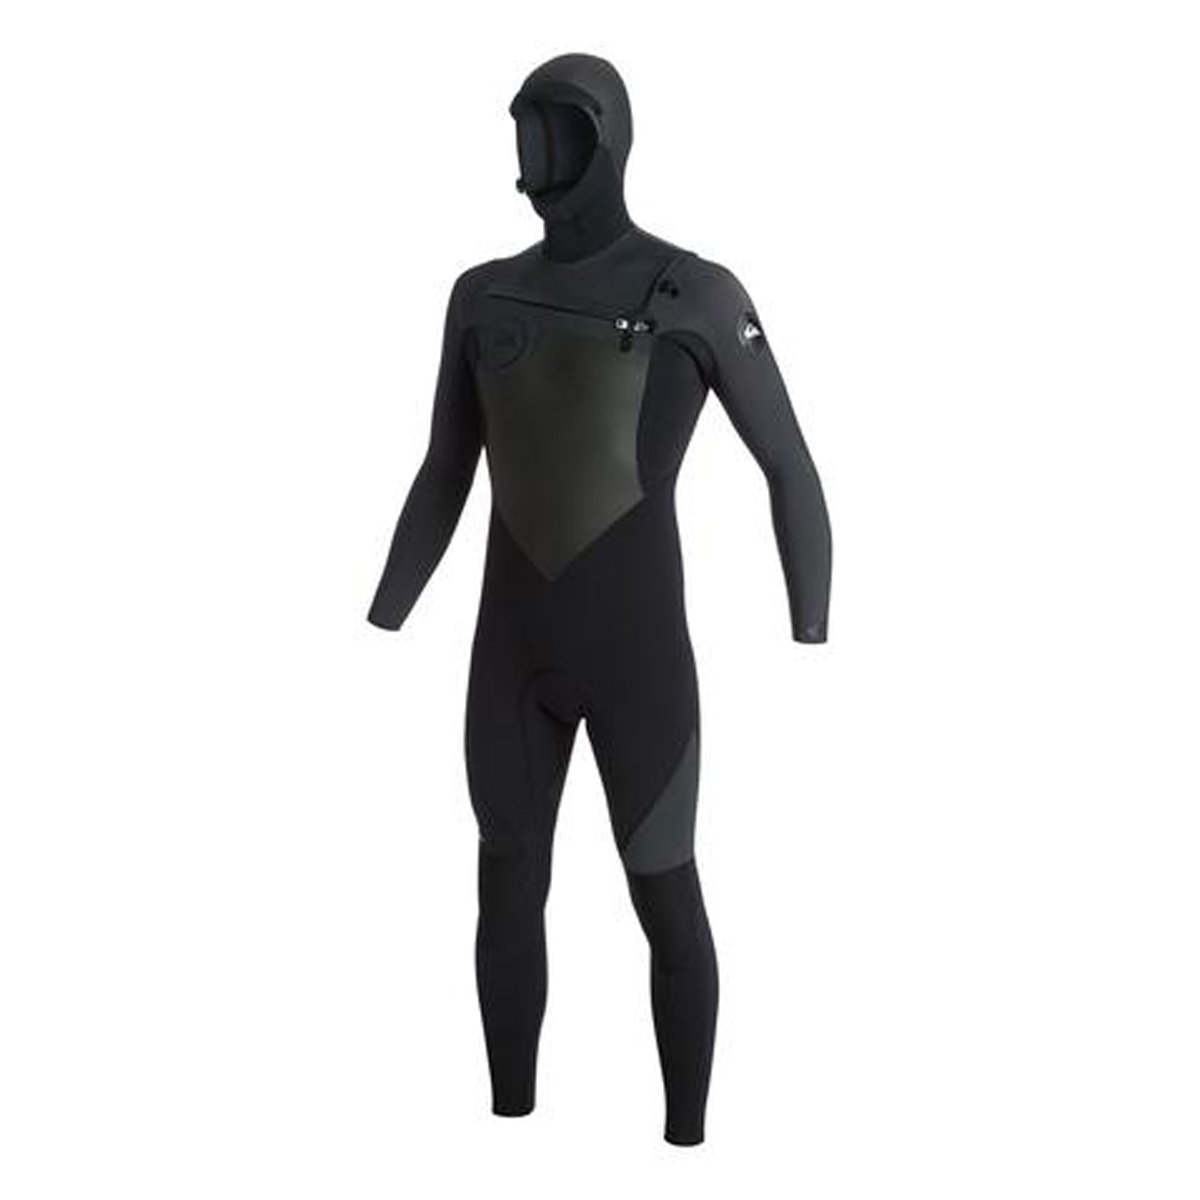 Quiksilver 5/4/3mm Syncro Series Chest Zip GBS Hooded Men's Full Wetsuits - Black/Jet Black/X-Large Short by Quiksilver